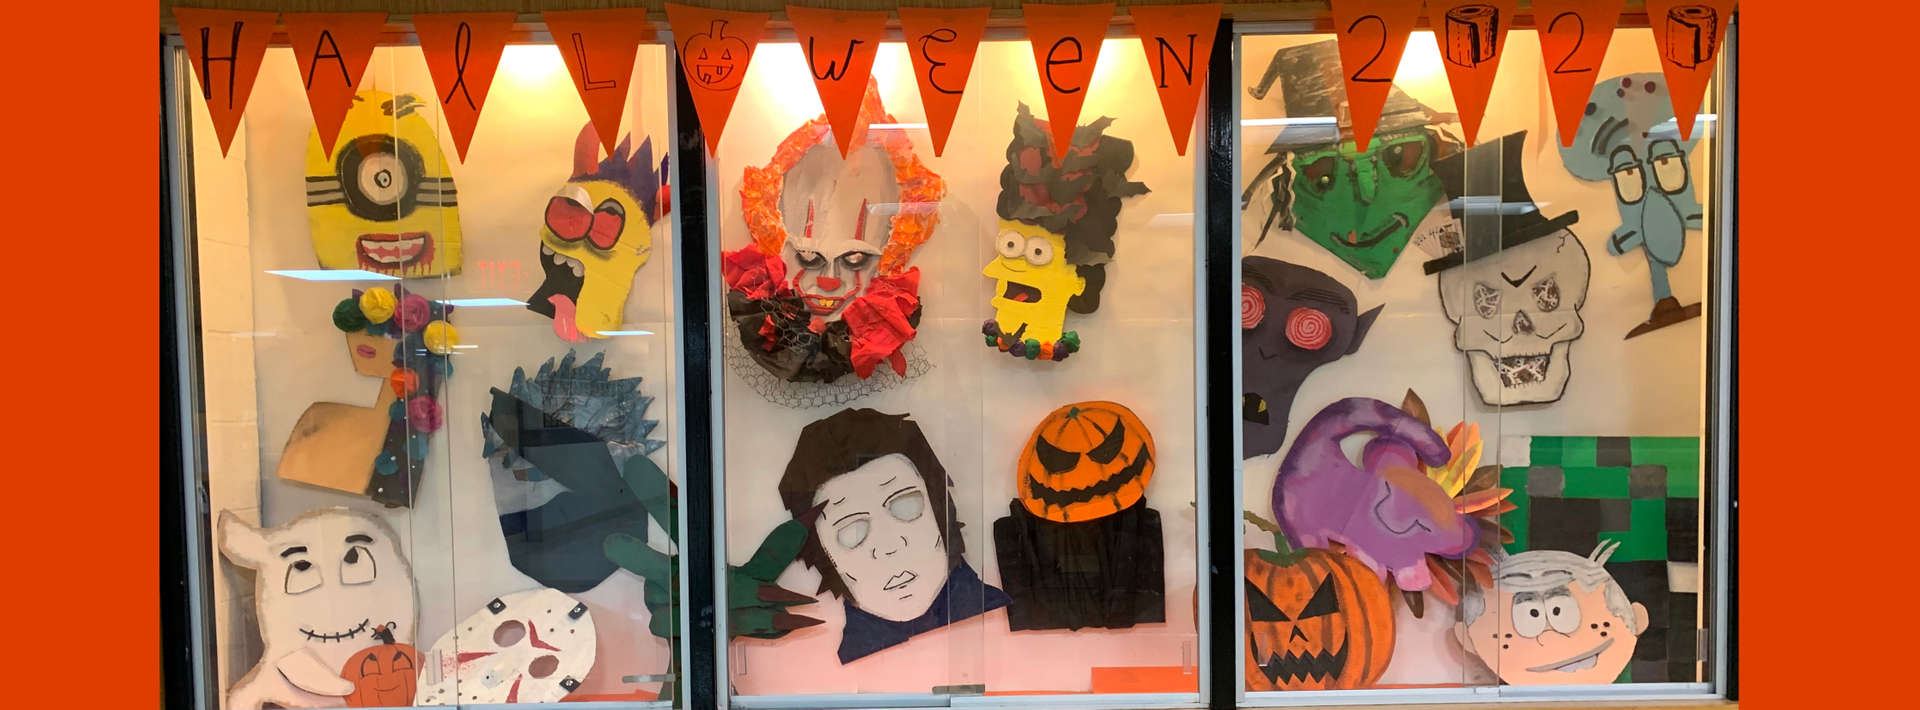 Halloween display of masks made by art students